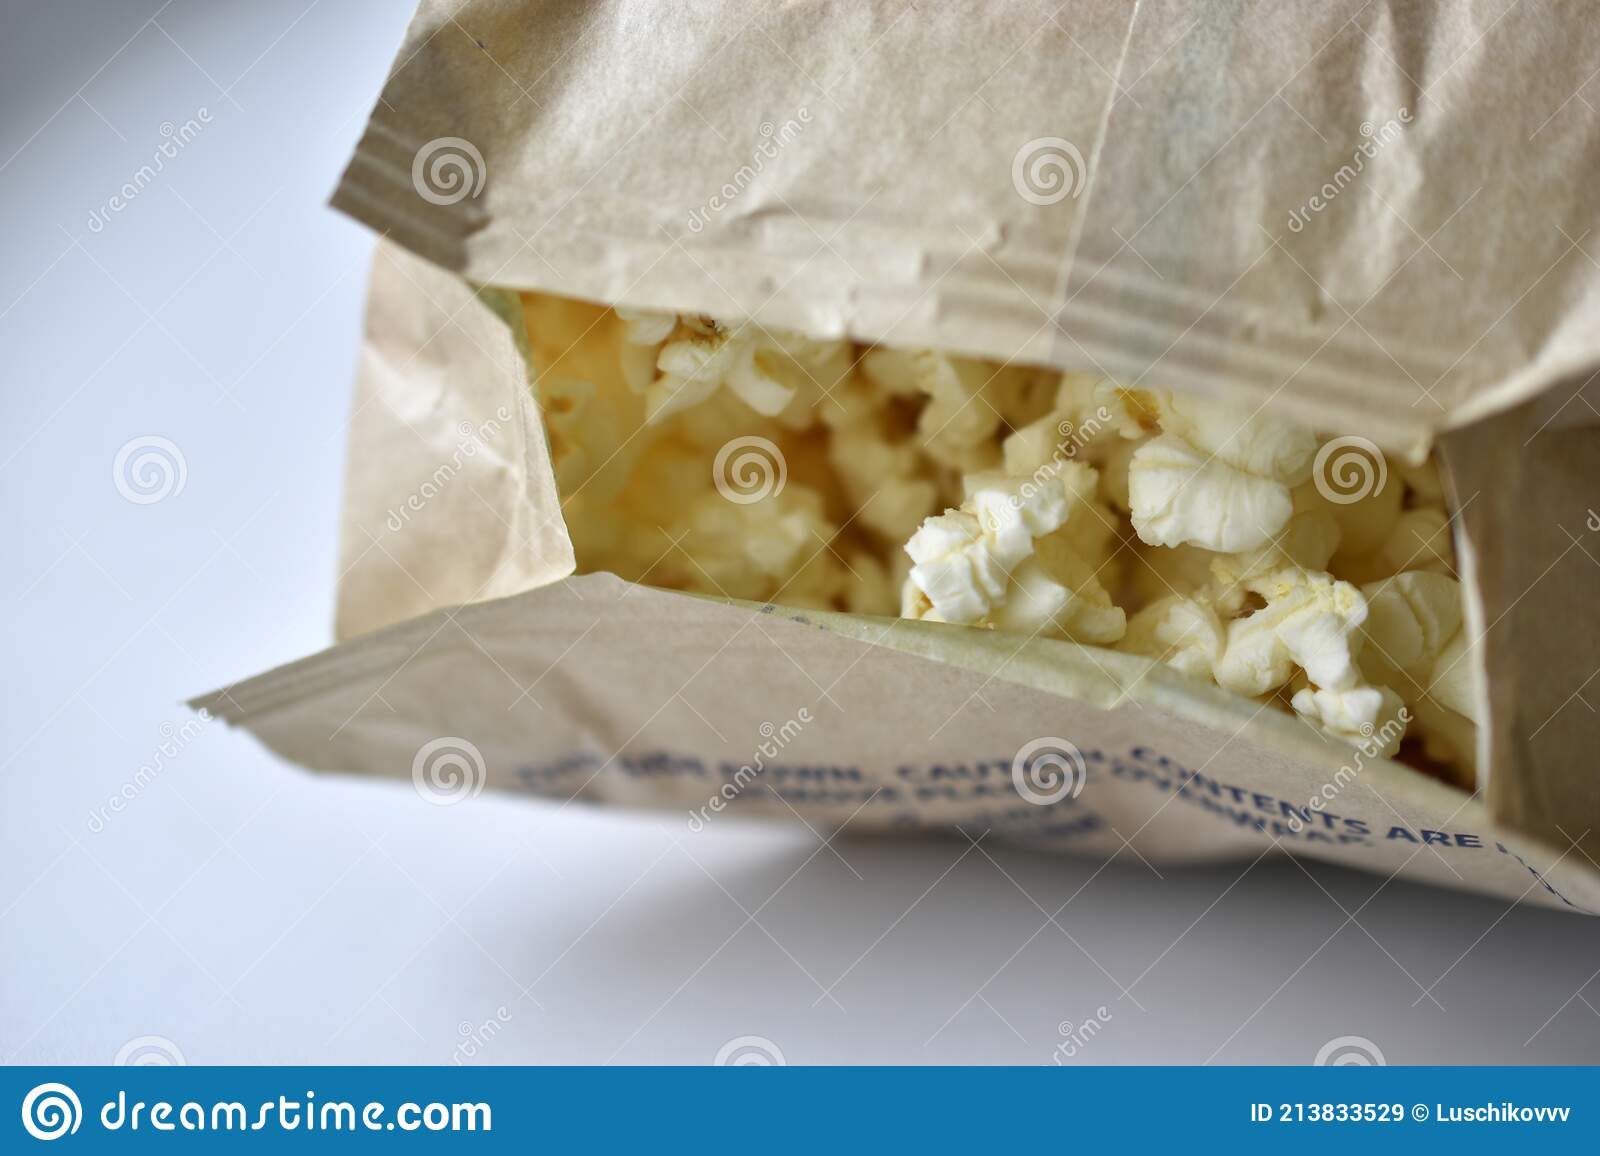 297 microwave popcorn photos free royalty free stock photos from dreamstime